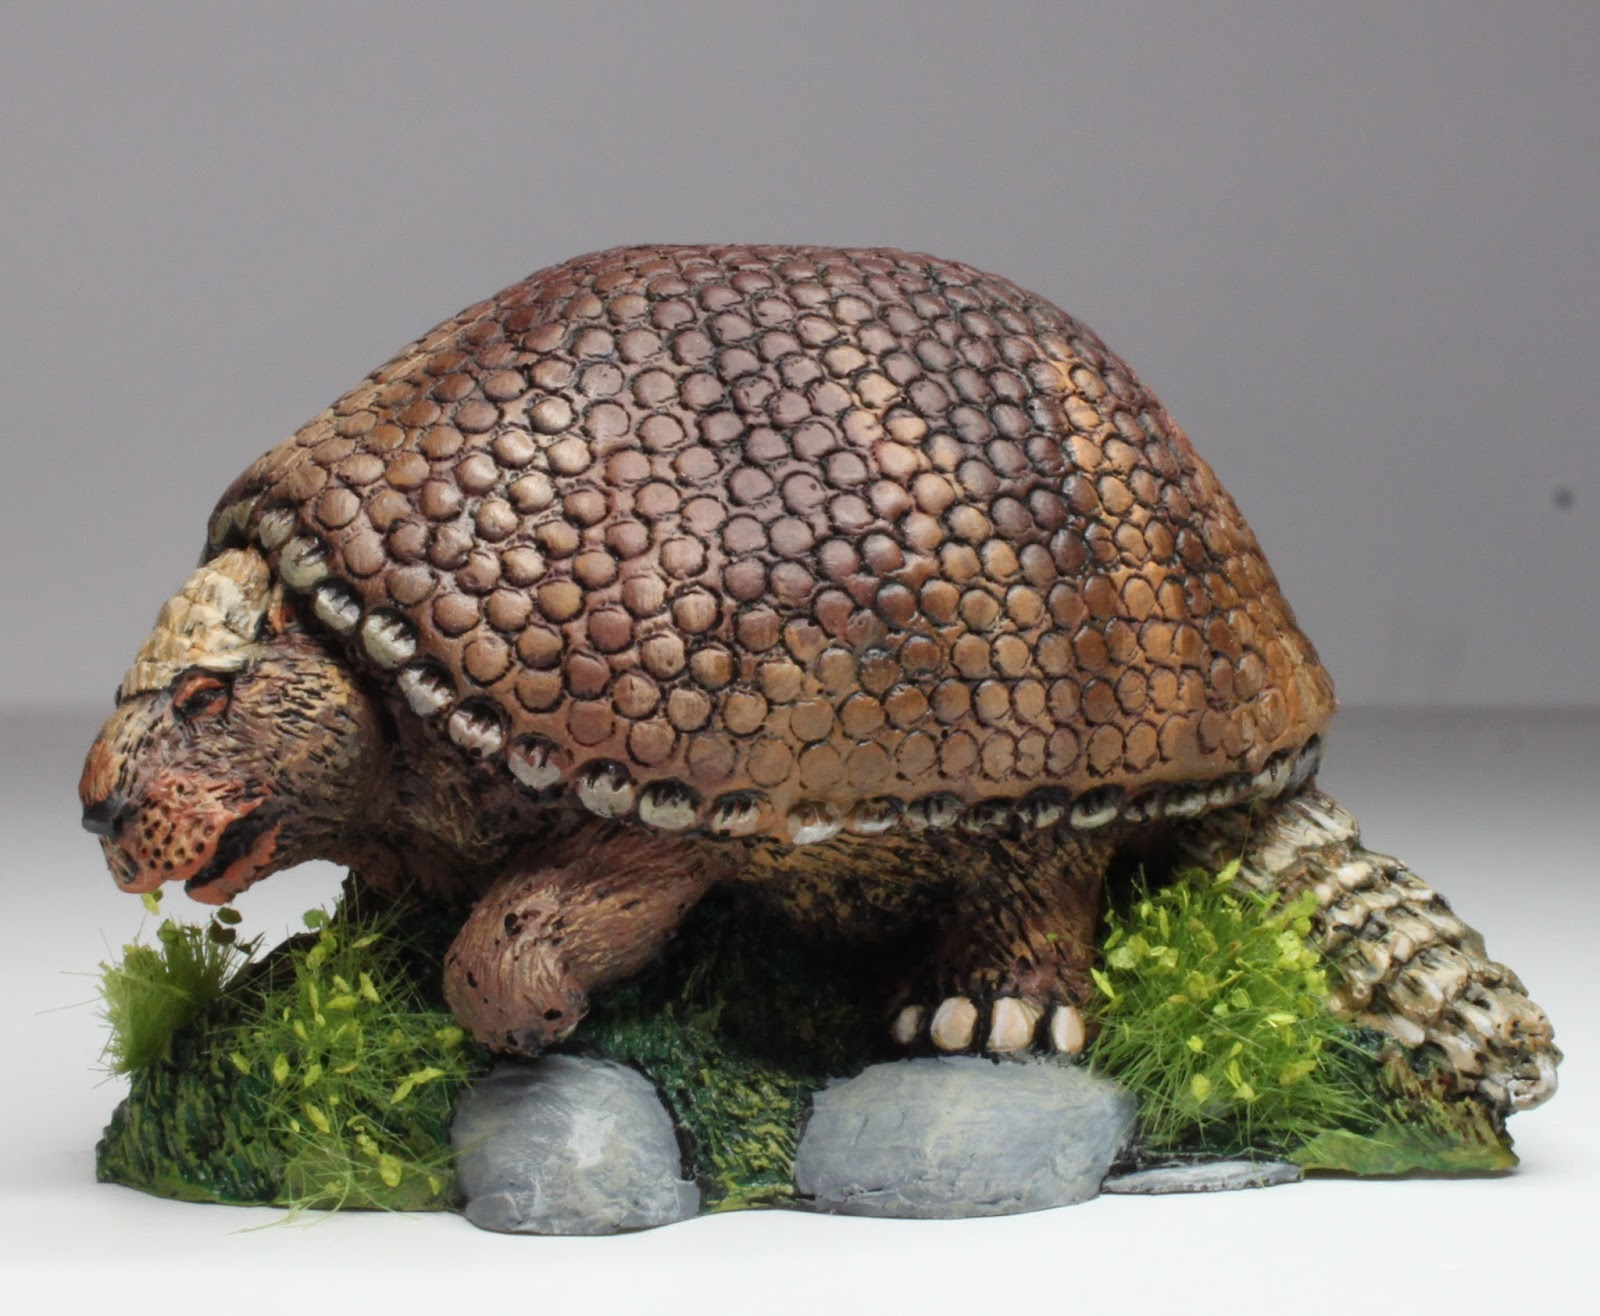 28mm victorian warfare a 28mm glyptodon glyptodon ice age